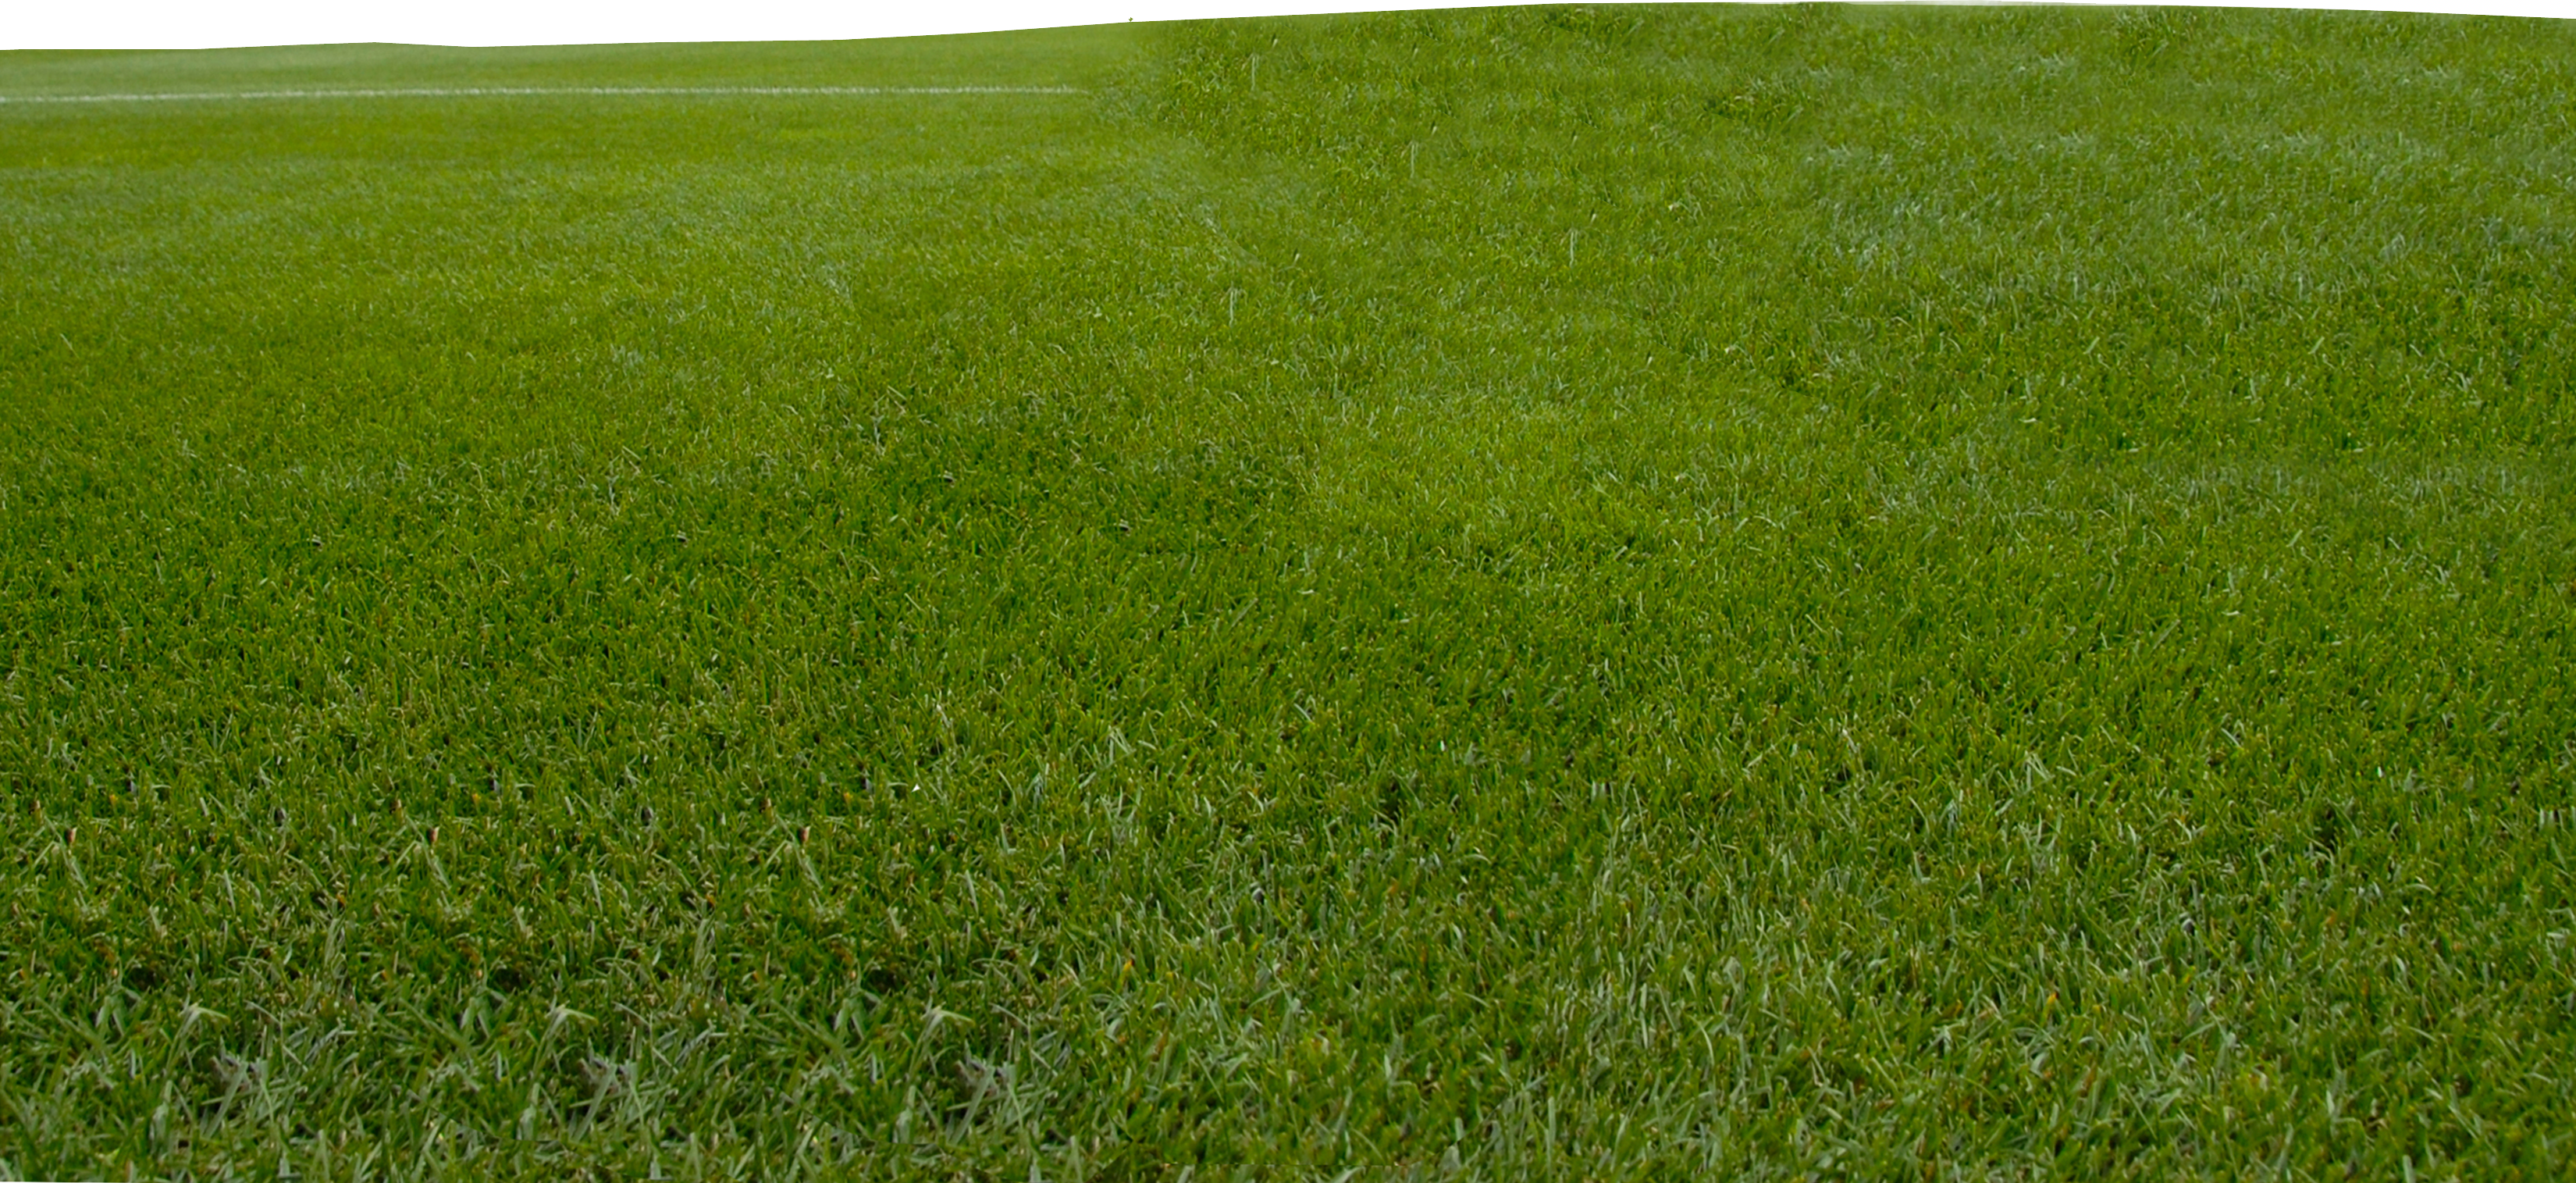 Grass free images at vector clip art online for Grass landscape